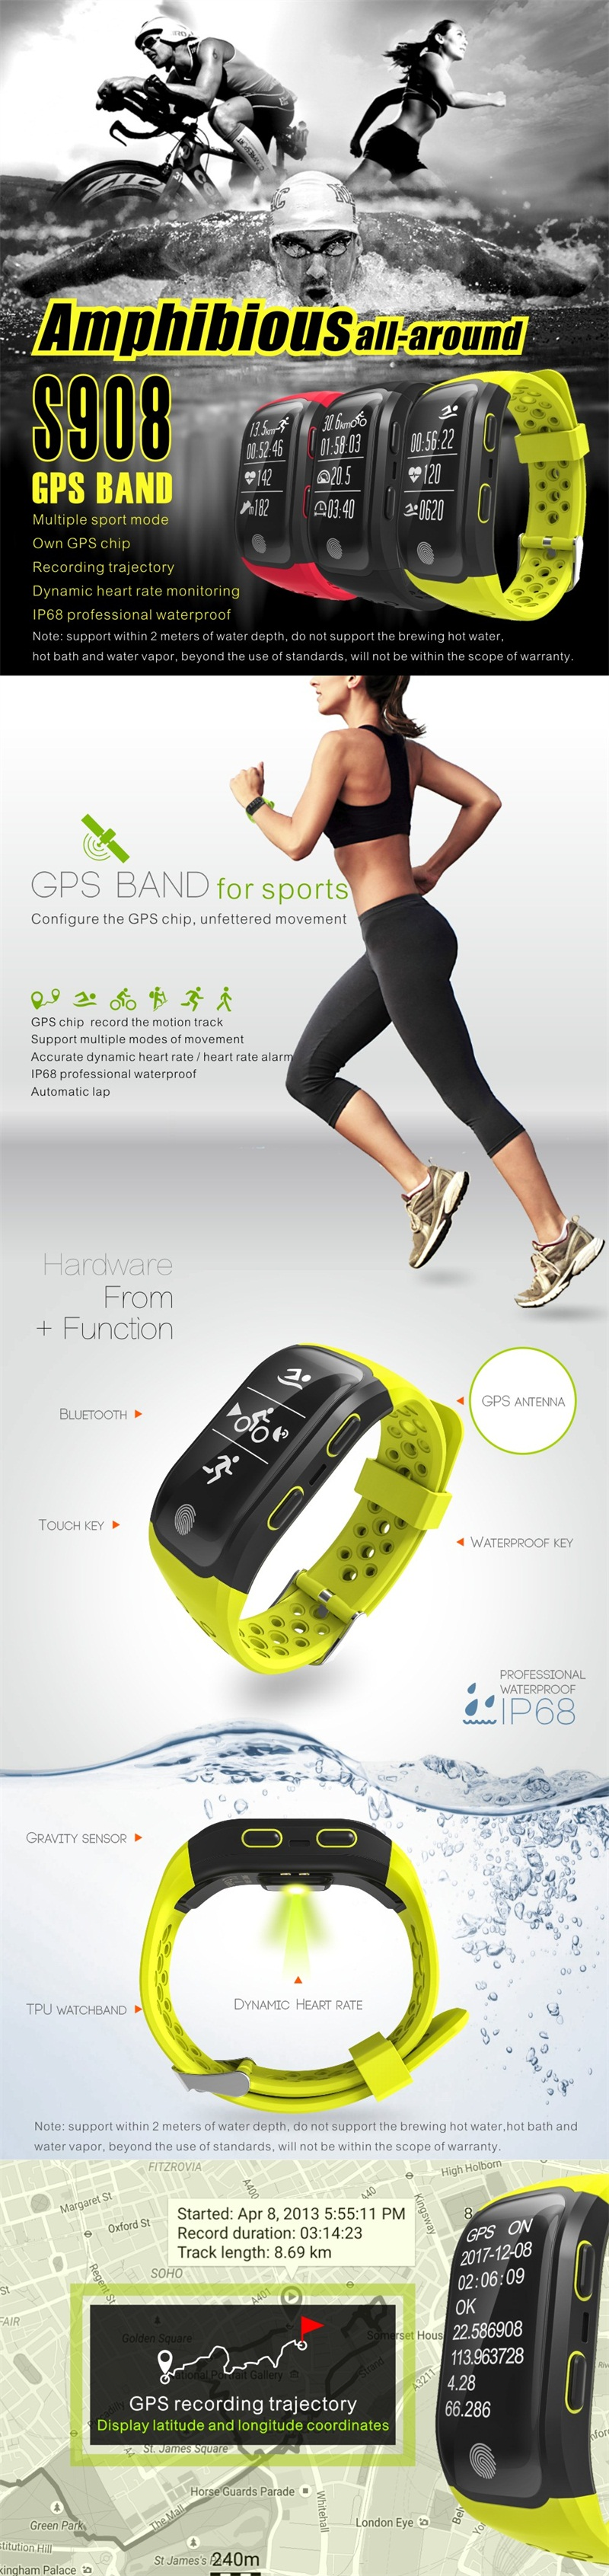 GPS Activity Tracker 1